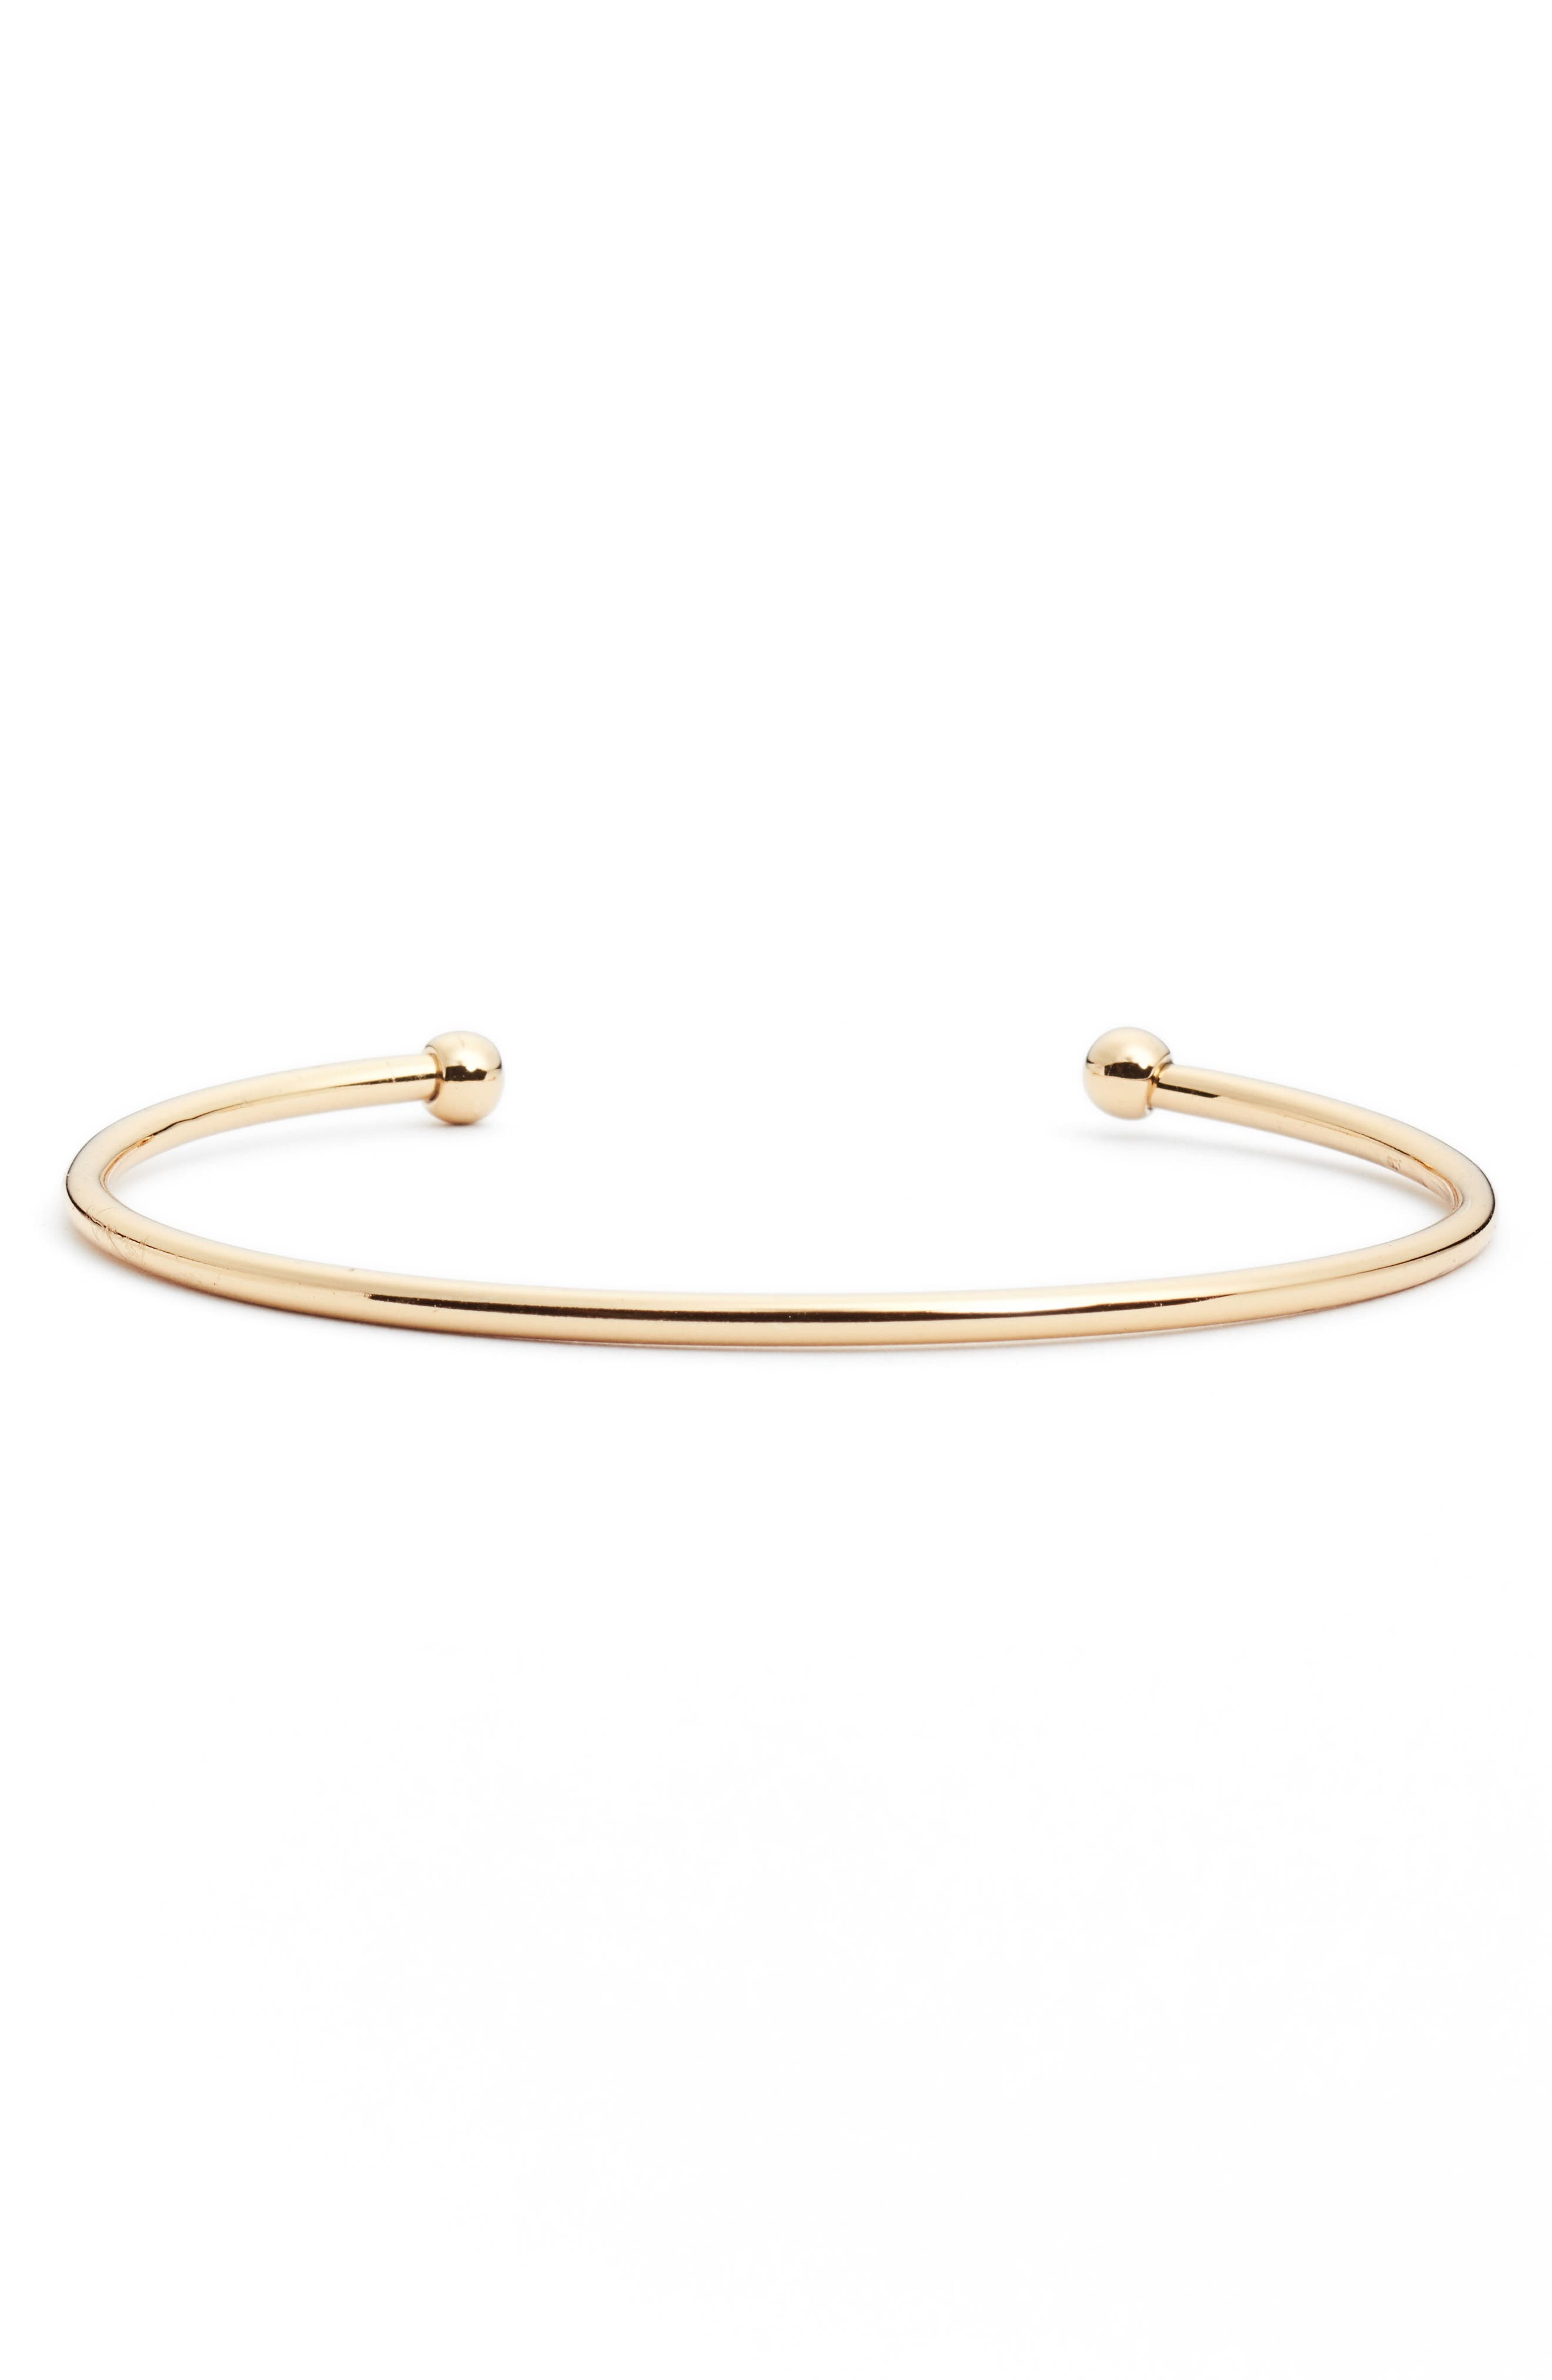 Break Free Bracelet,                         Main,                         color, Gold